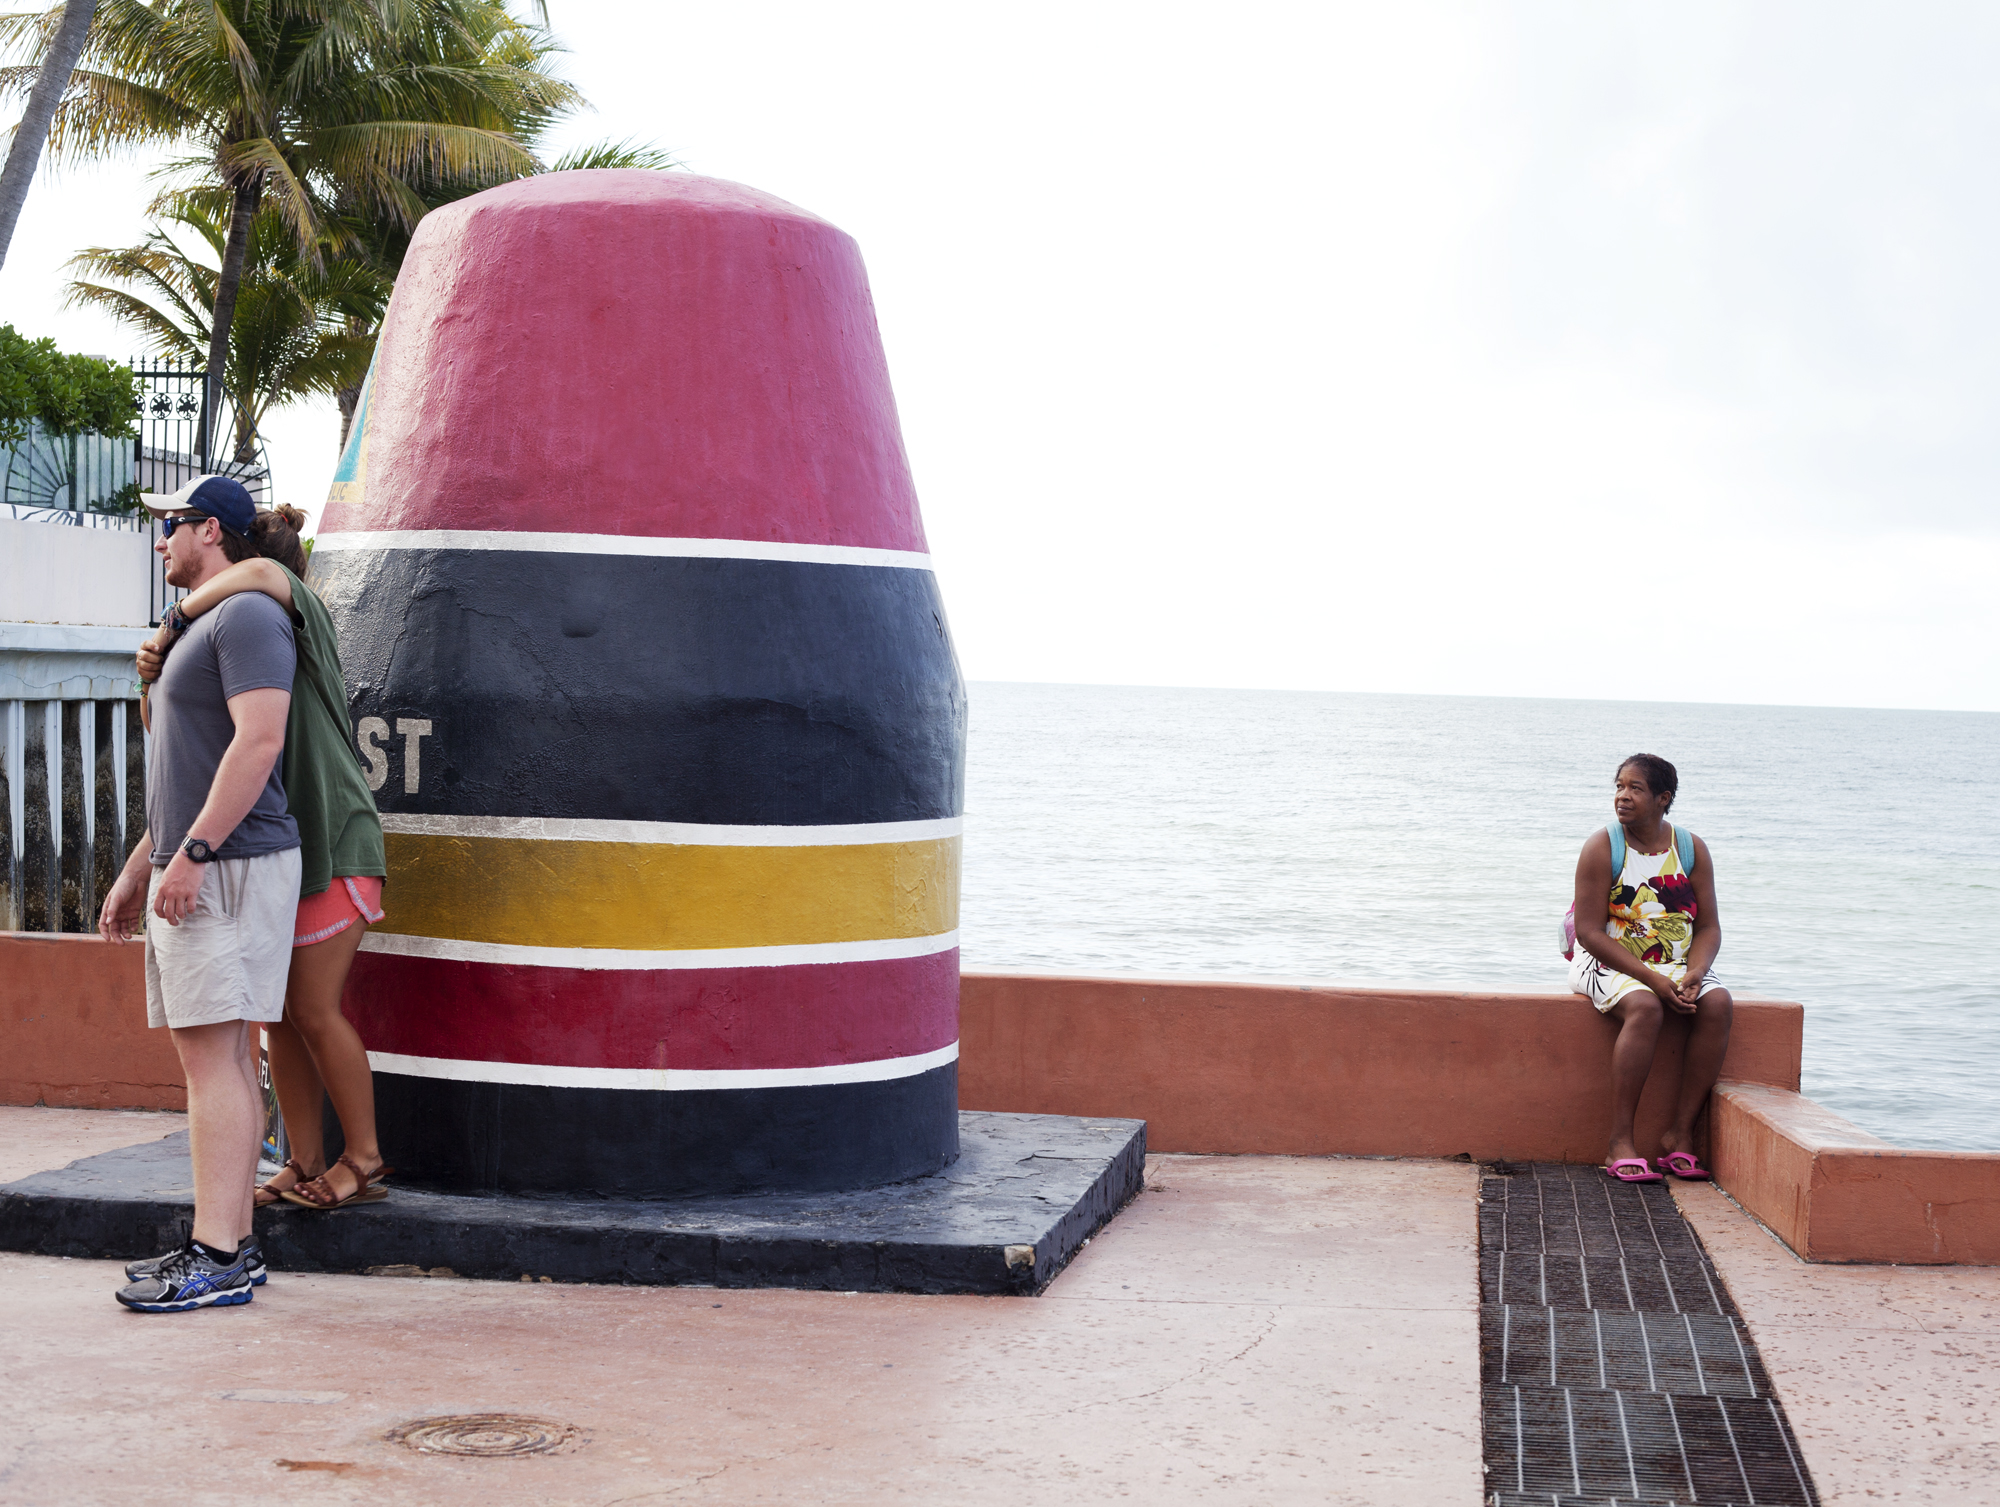 key west_06_web.jpg